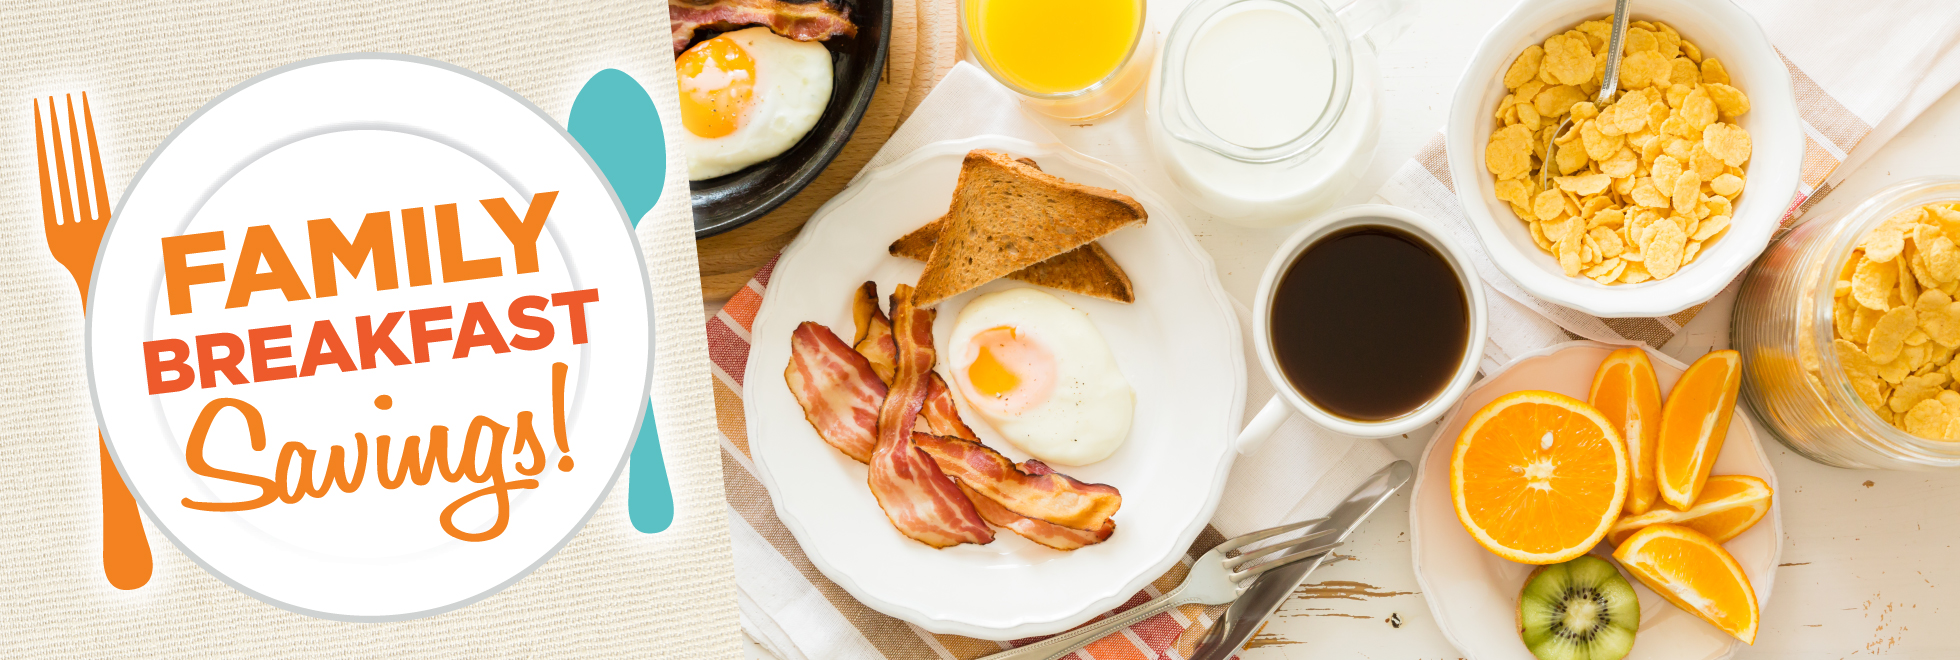 Family Meals Breakfast Savings